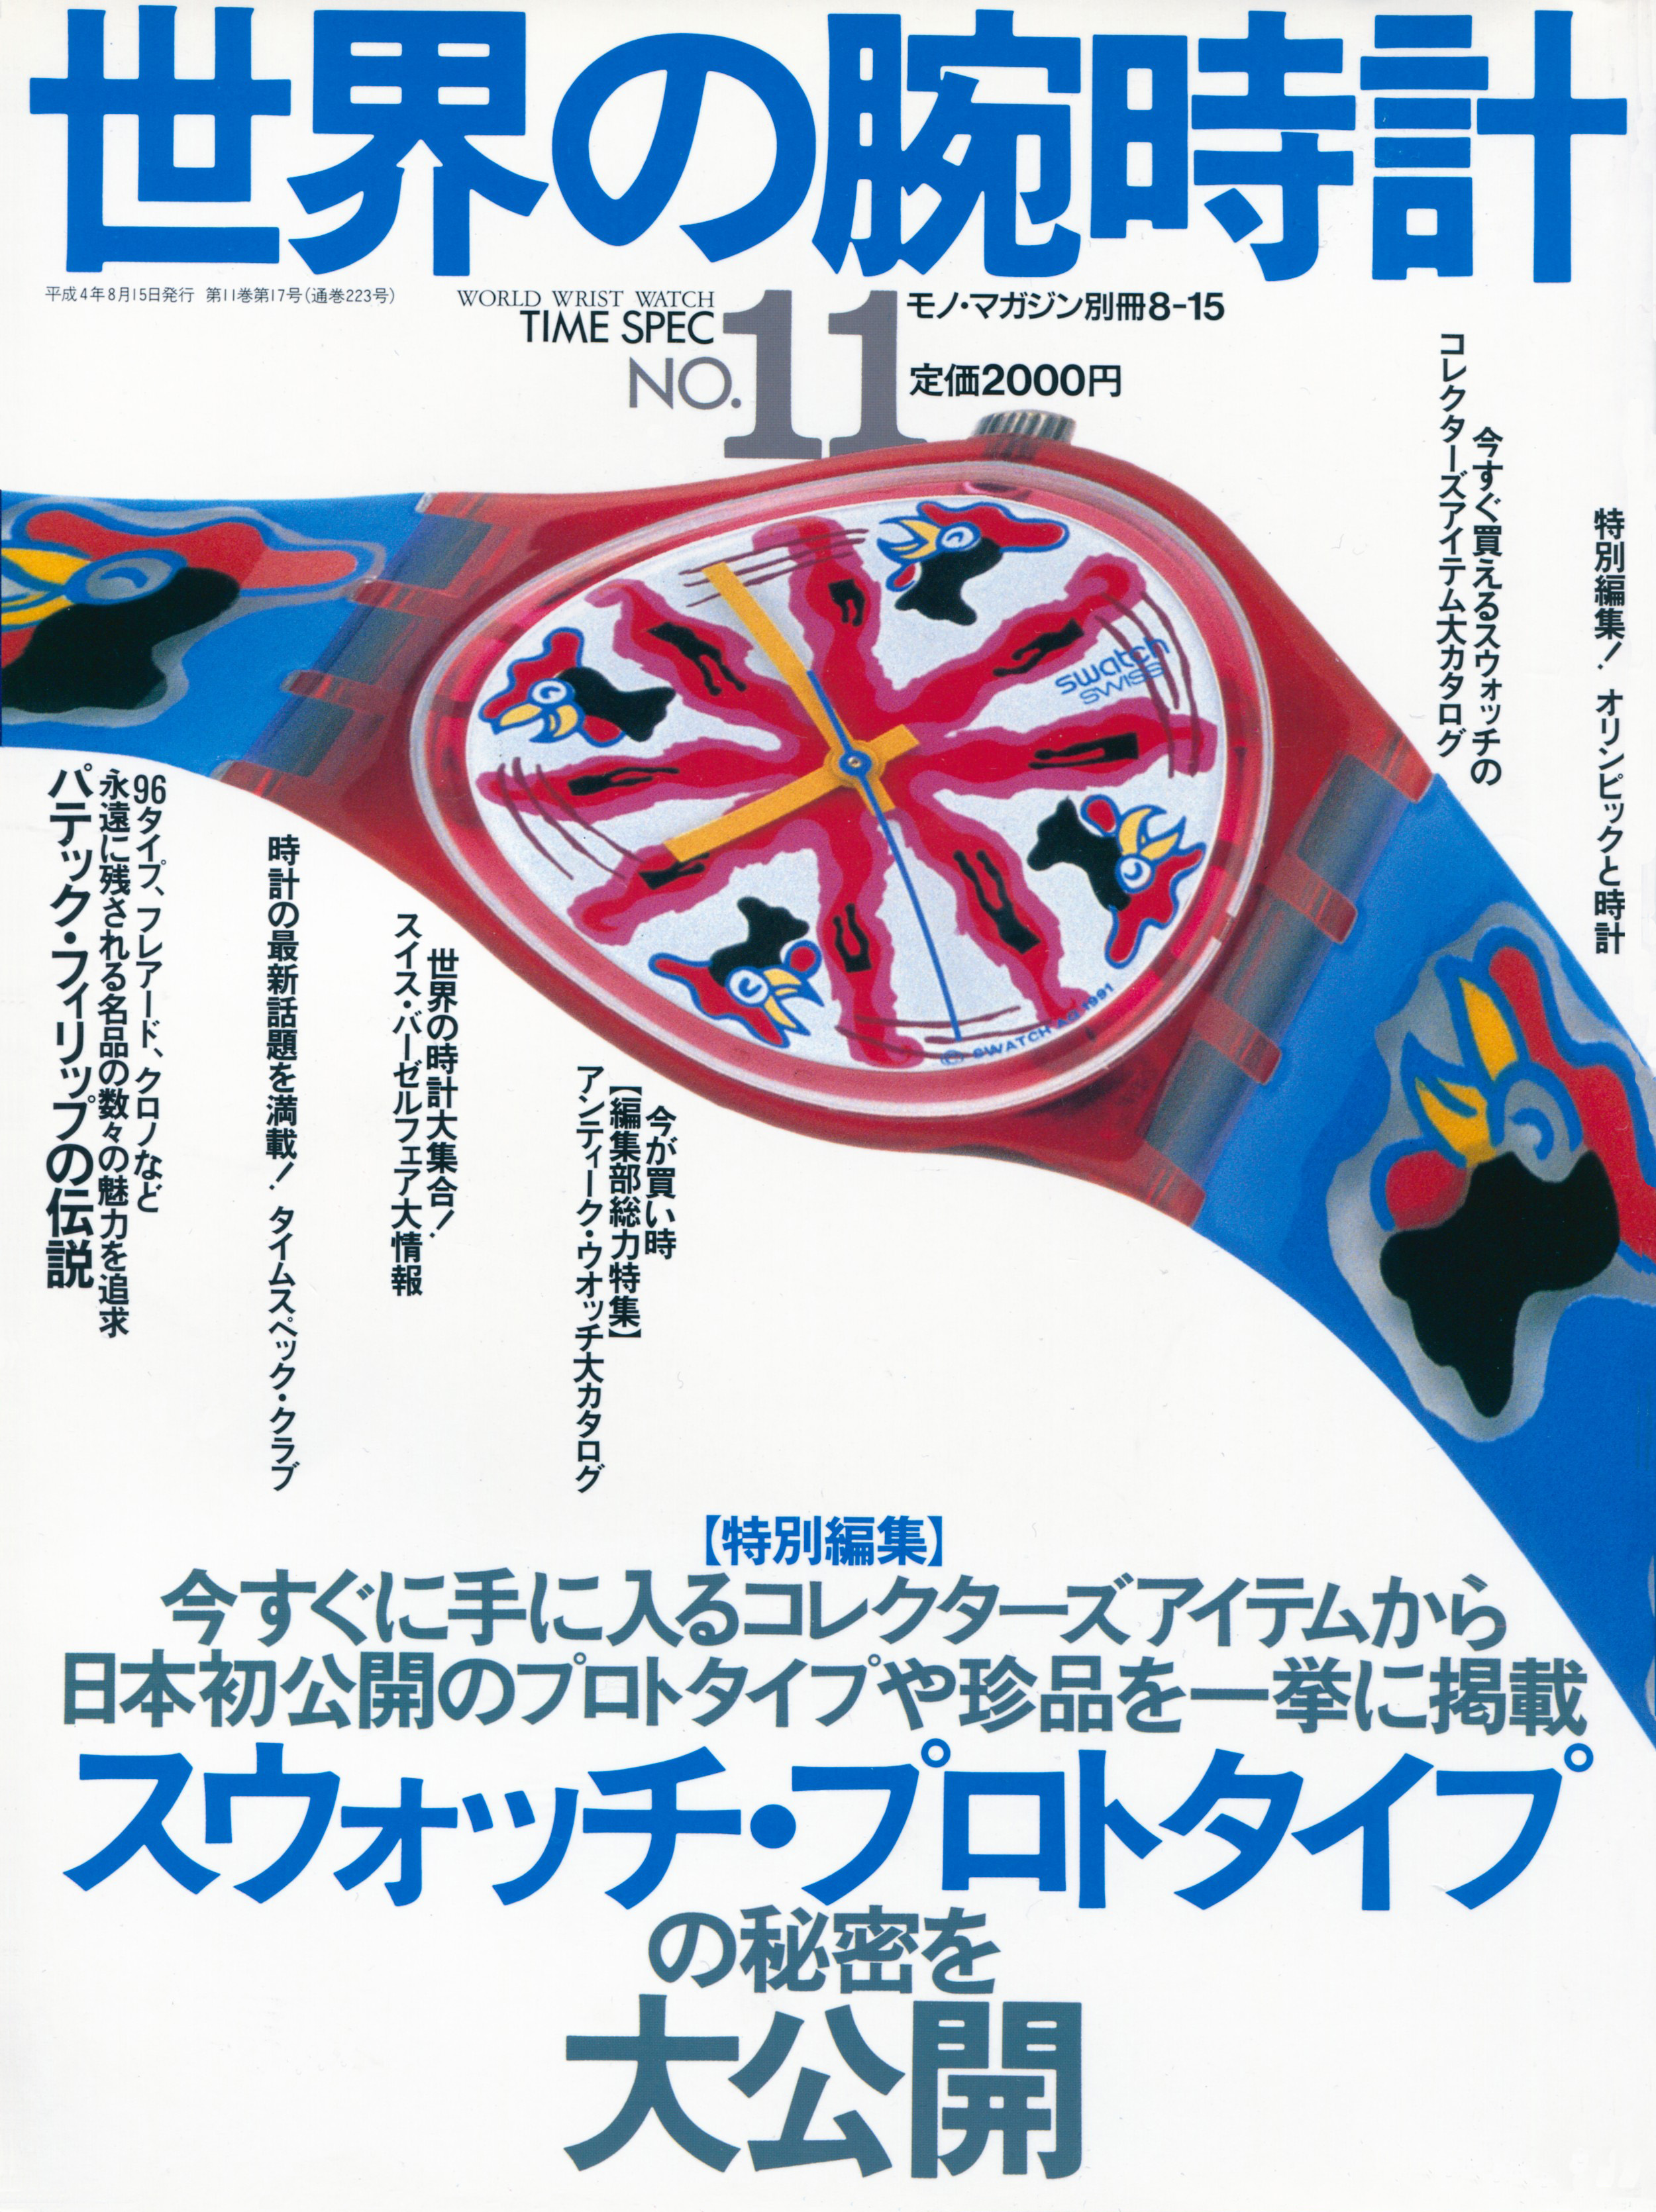 Cover - World Wrist Watch Time Spec No.11